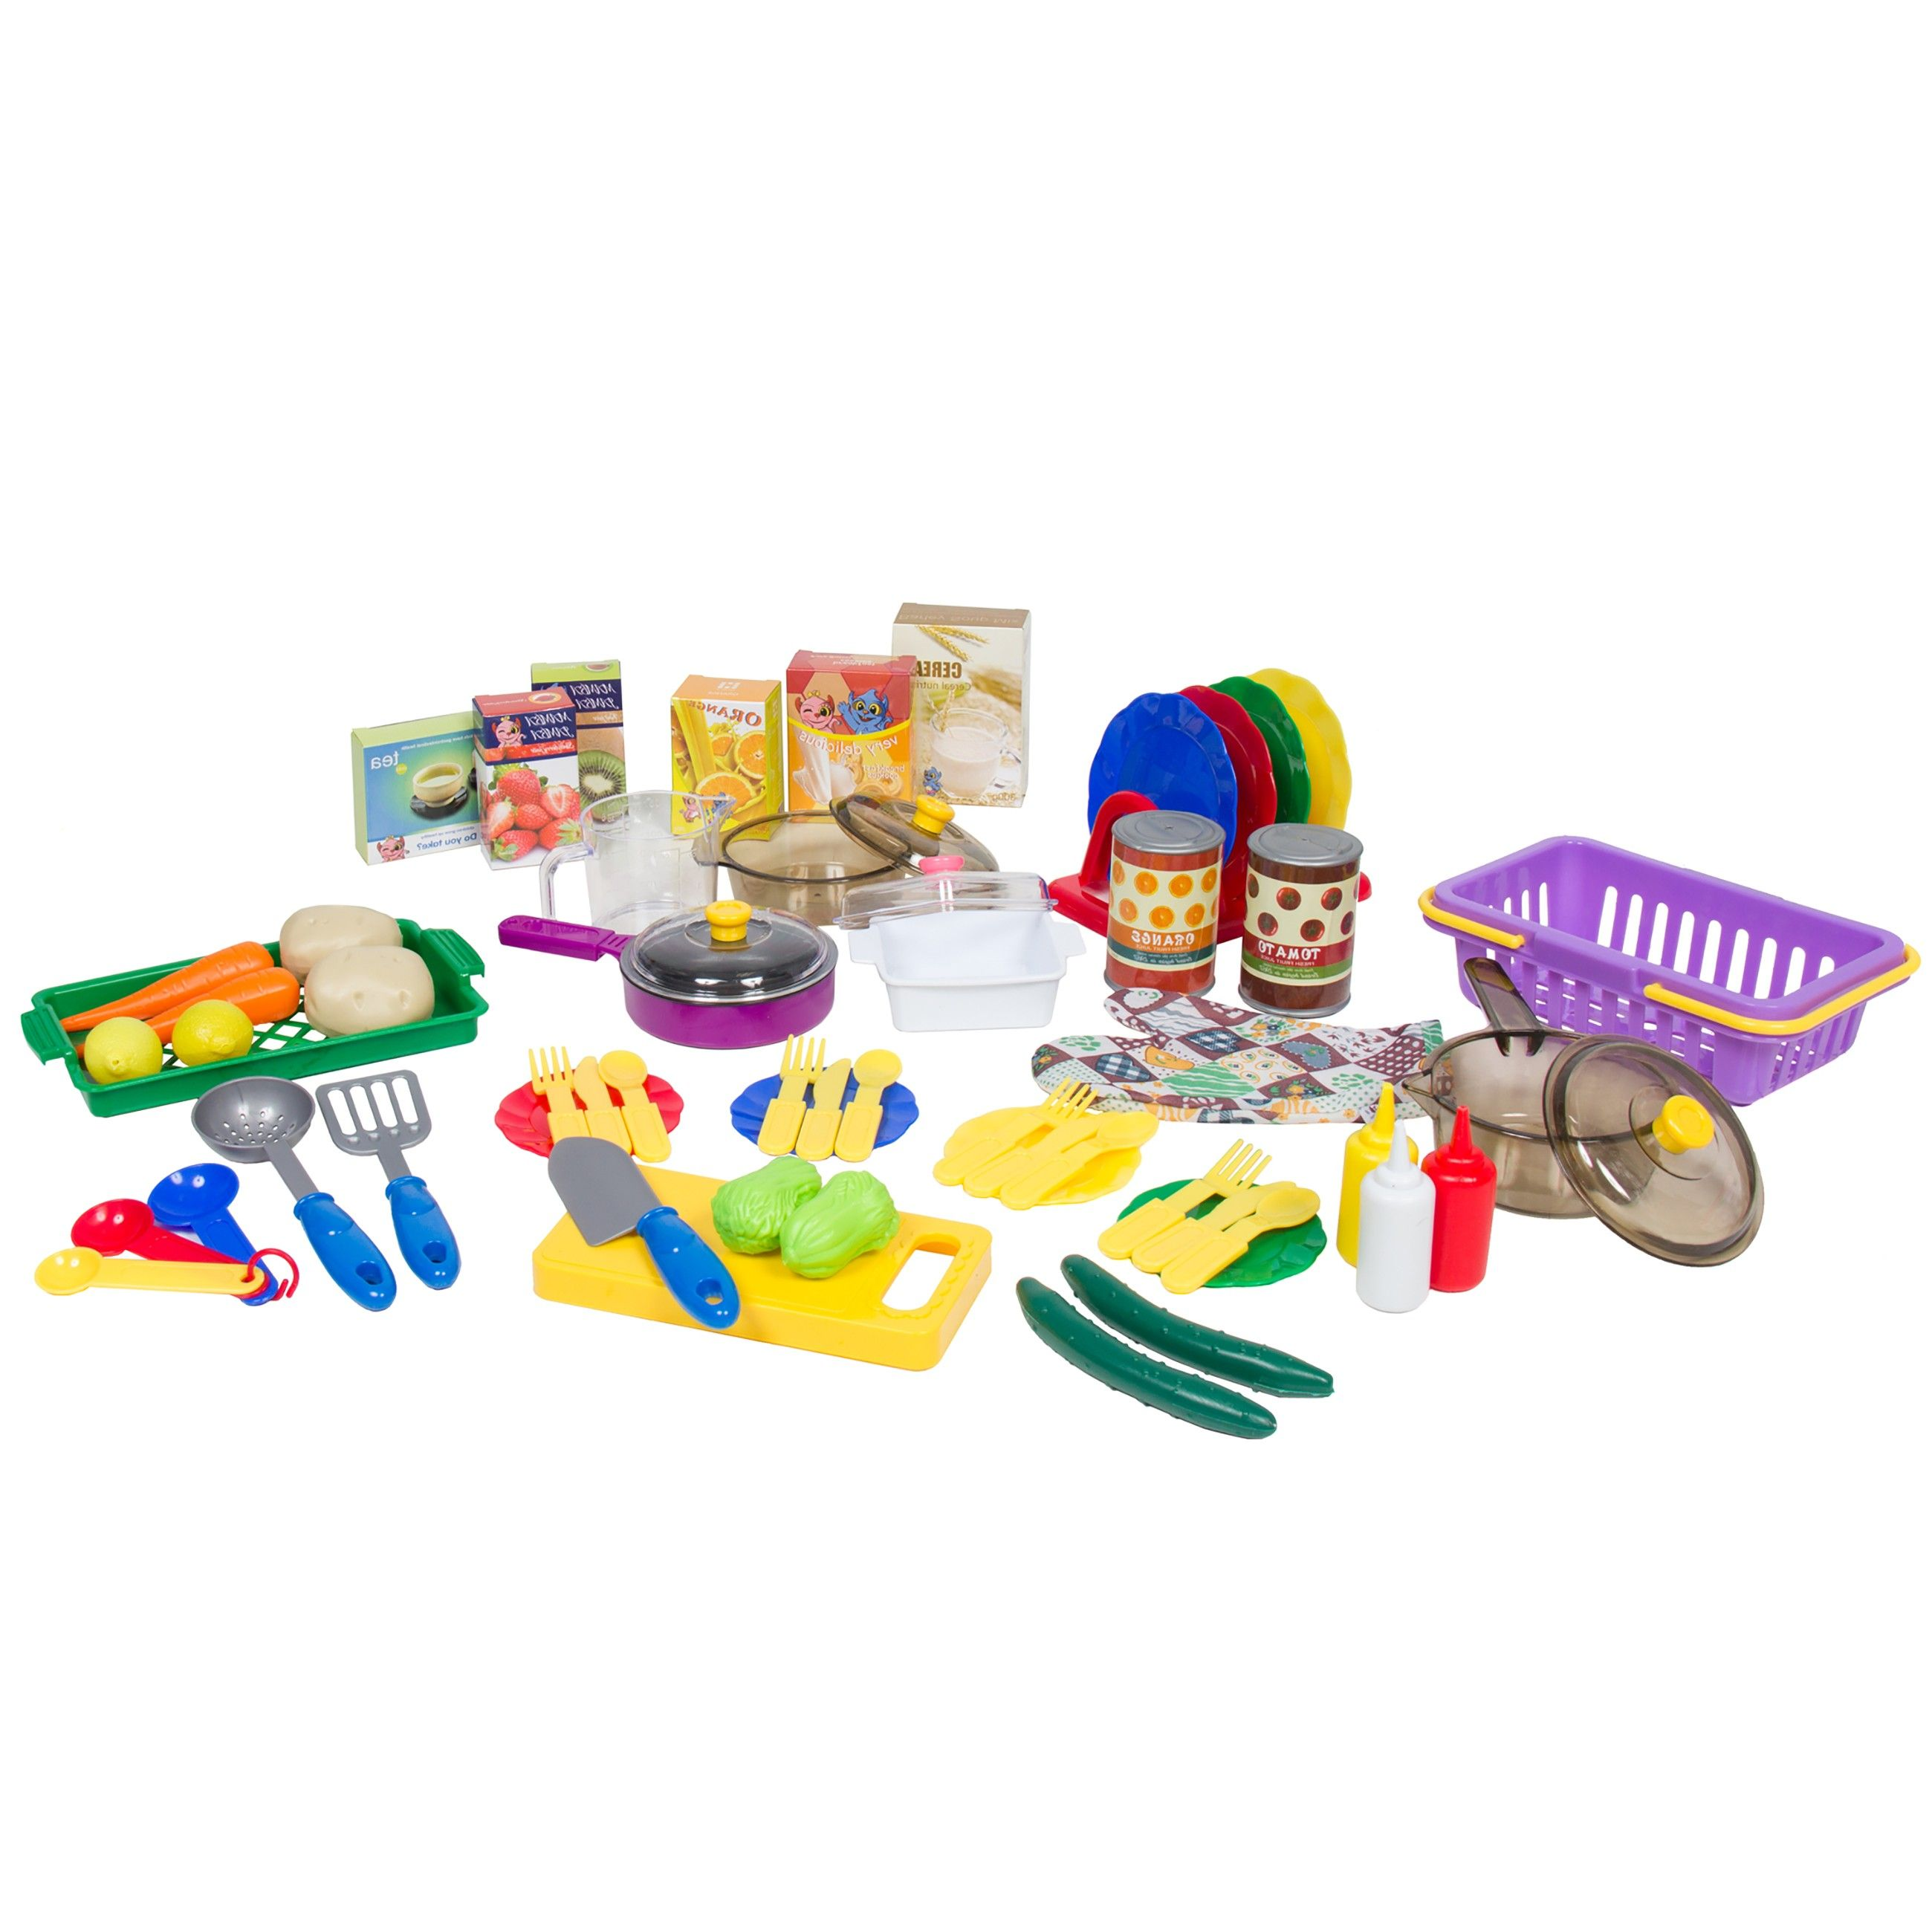 deluxe children kitchen cooking pretend play set with accessories ...